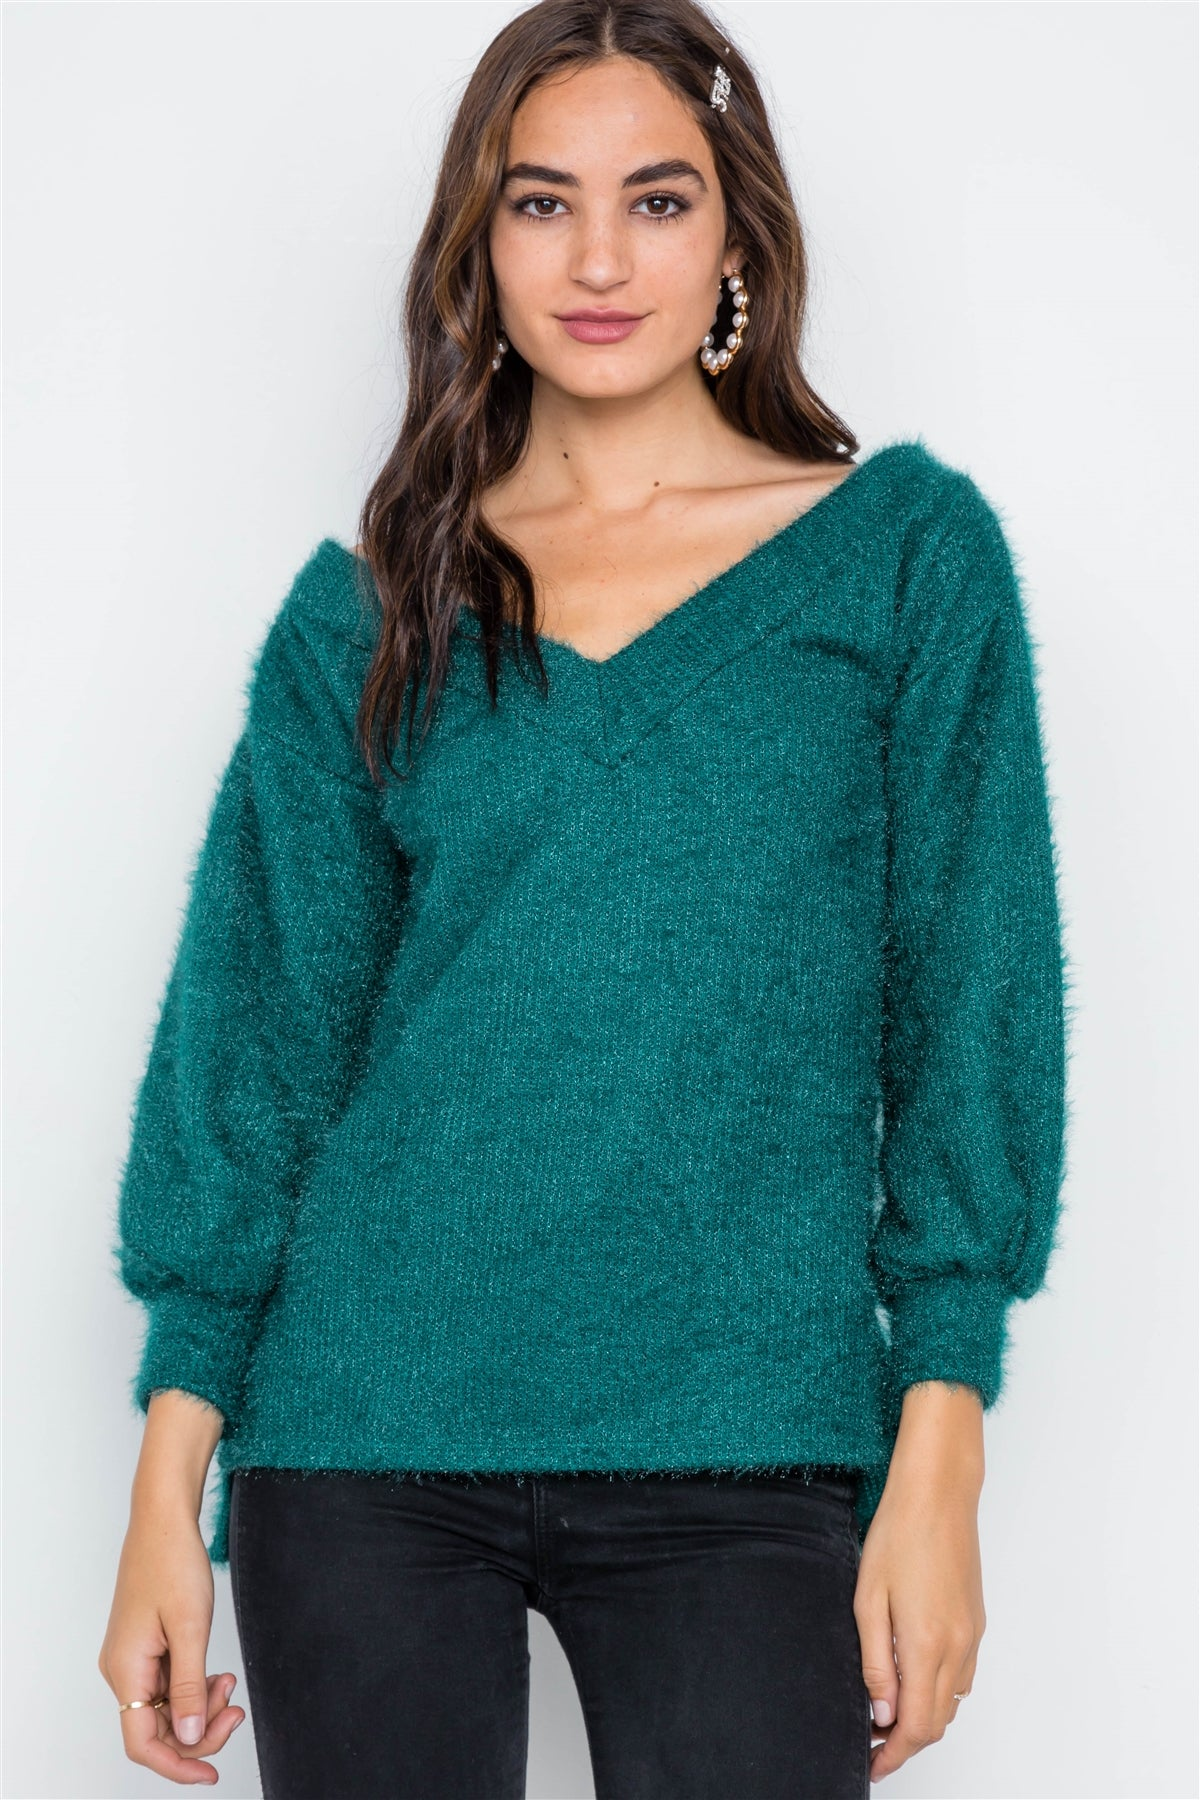 Teal Fuzzy Long Sleeve V-neck Sweater - Kendalls Deals